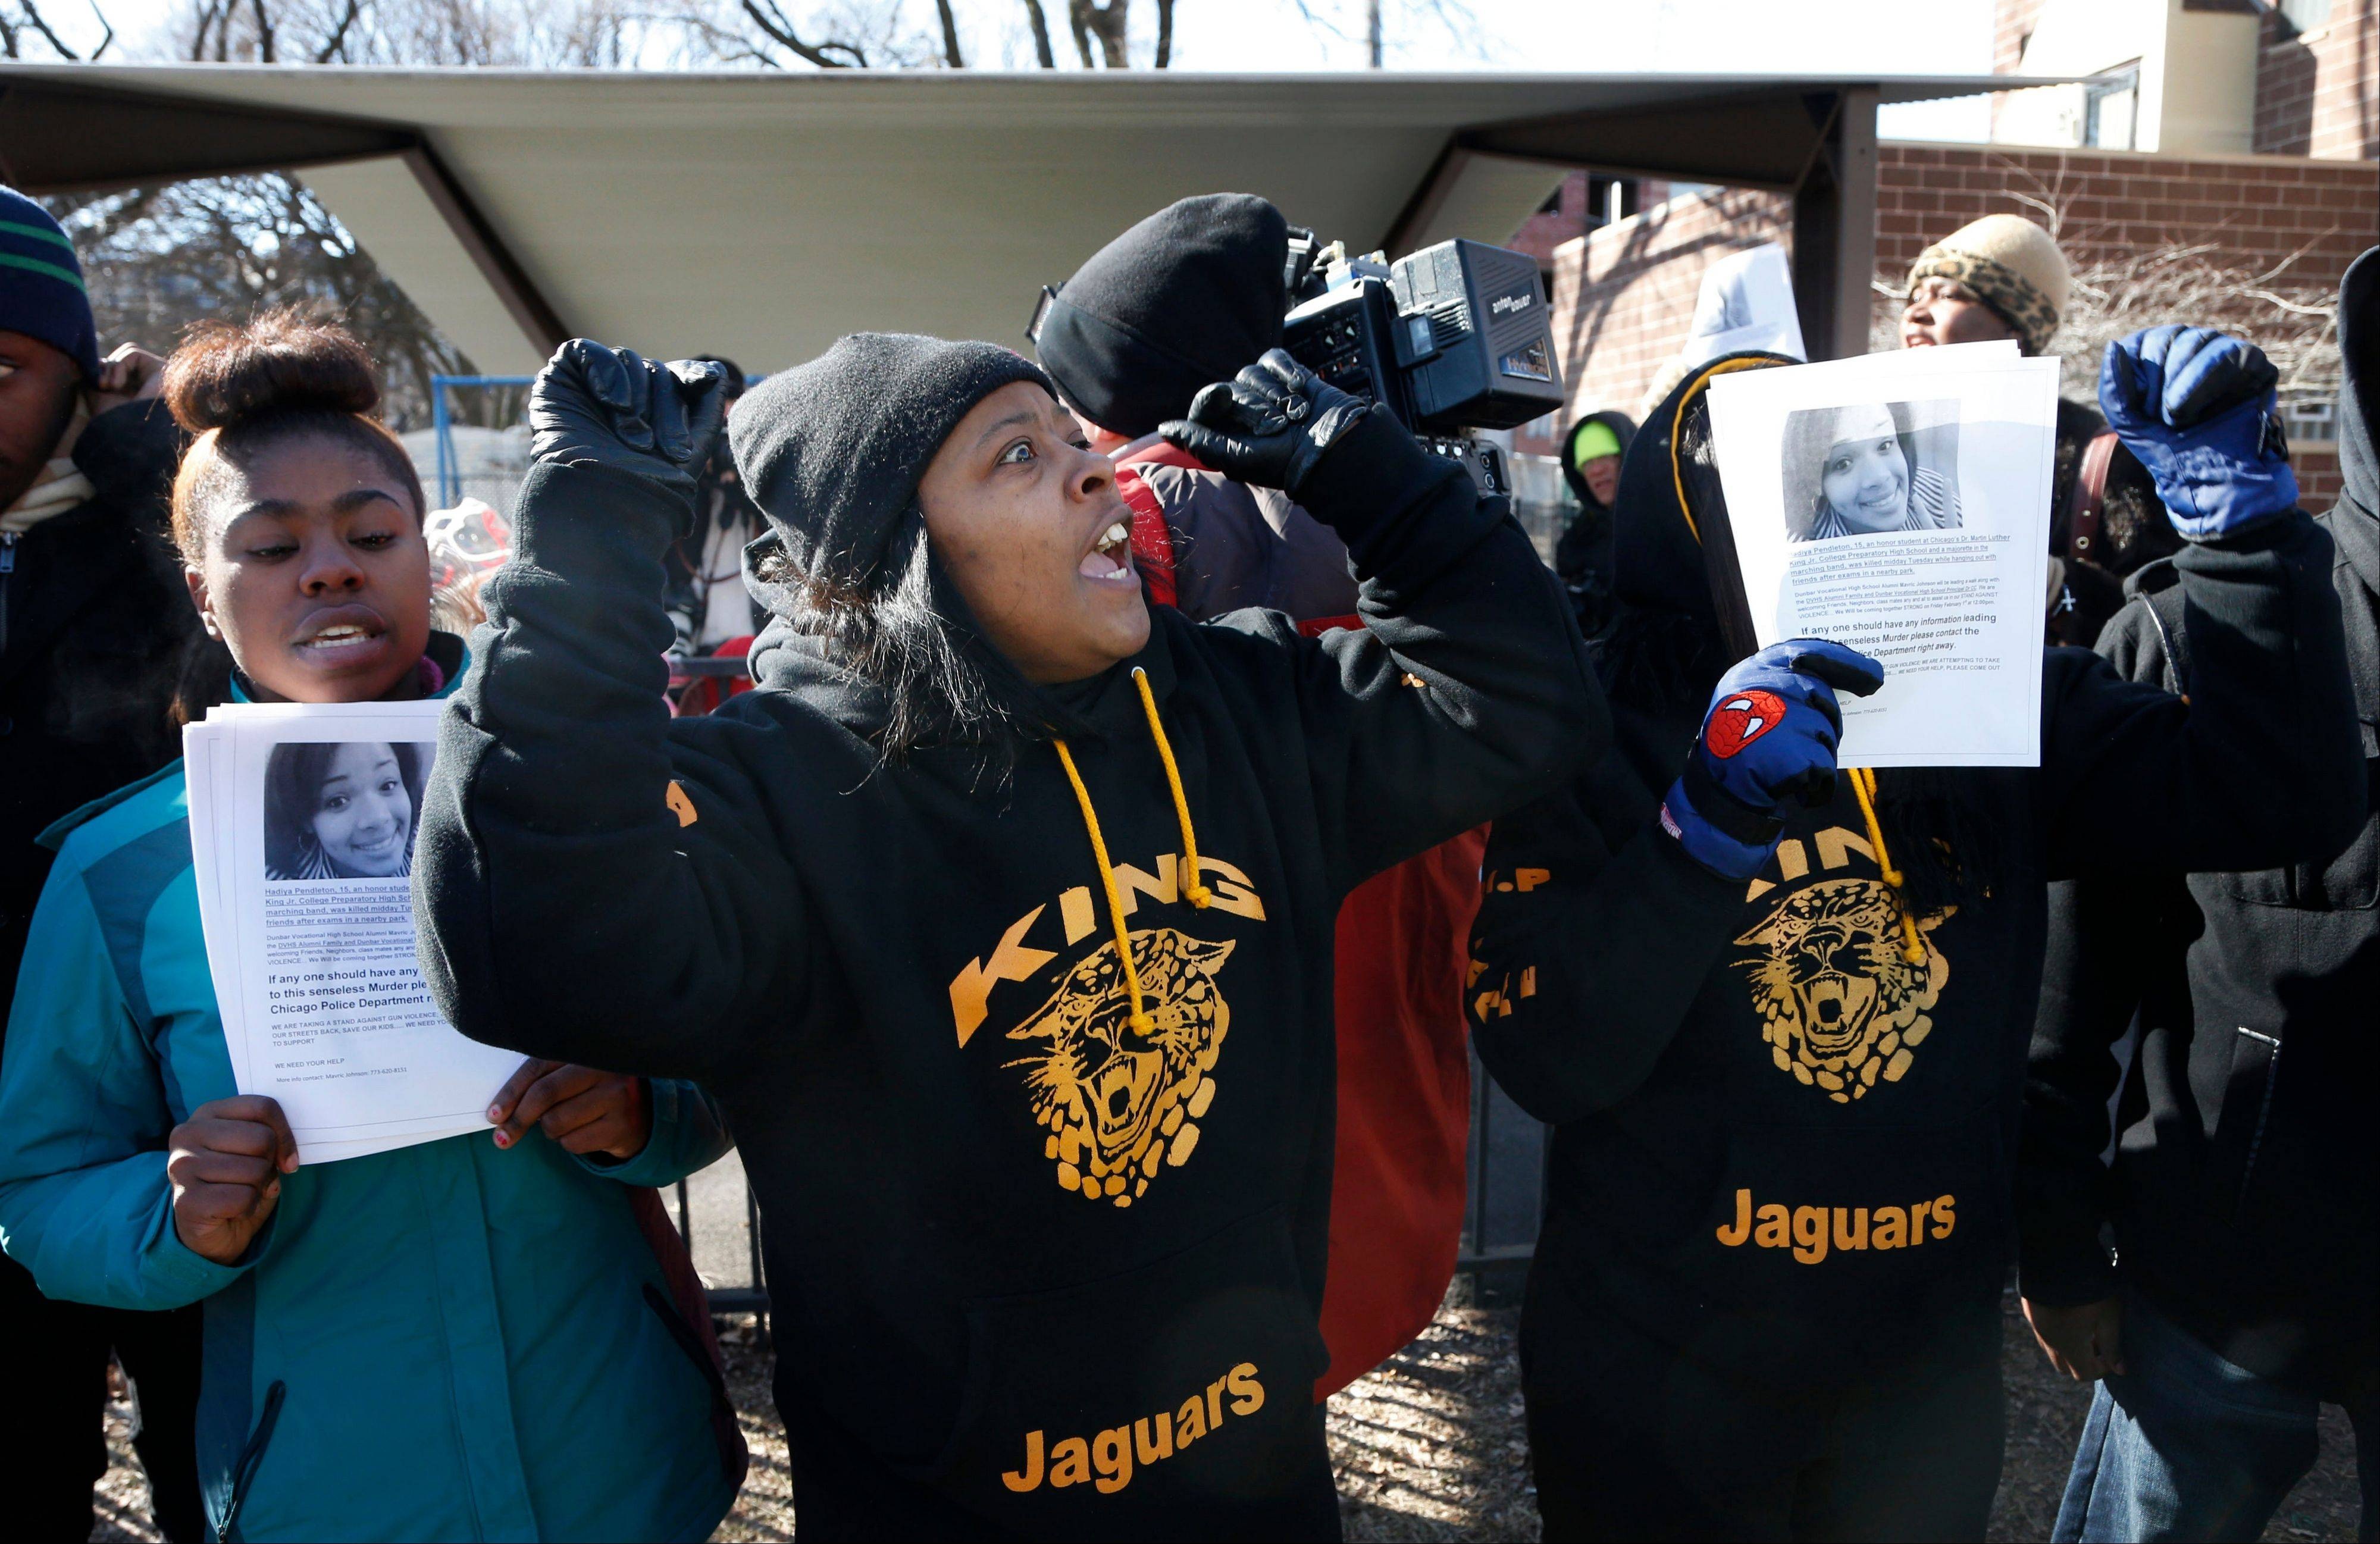 Anti-gun violence protesters rally Friday at the scene where Hadyia Pendleton was killed in Chicago.